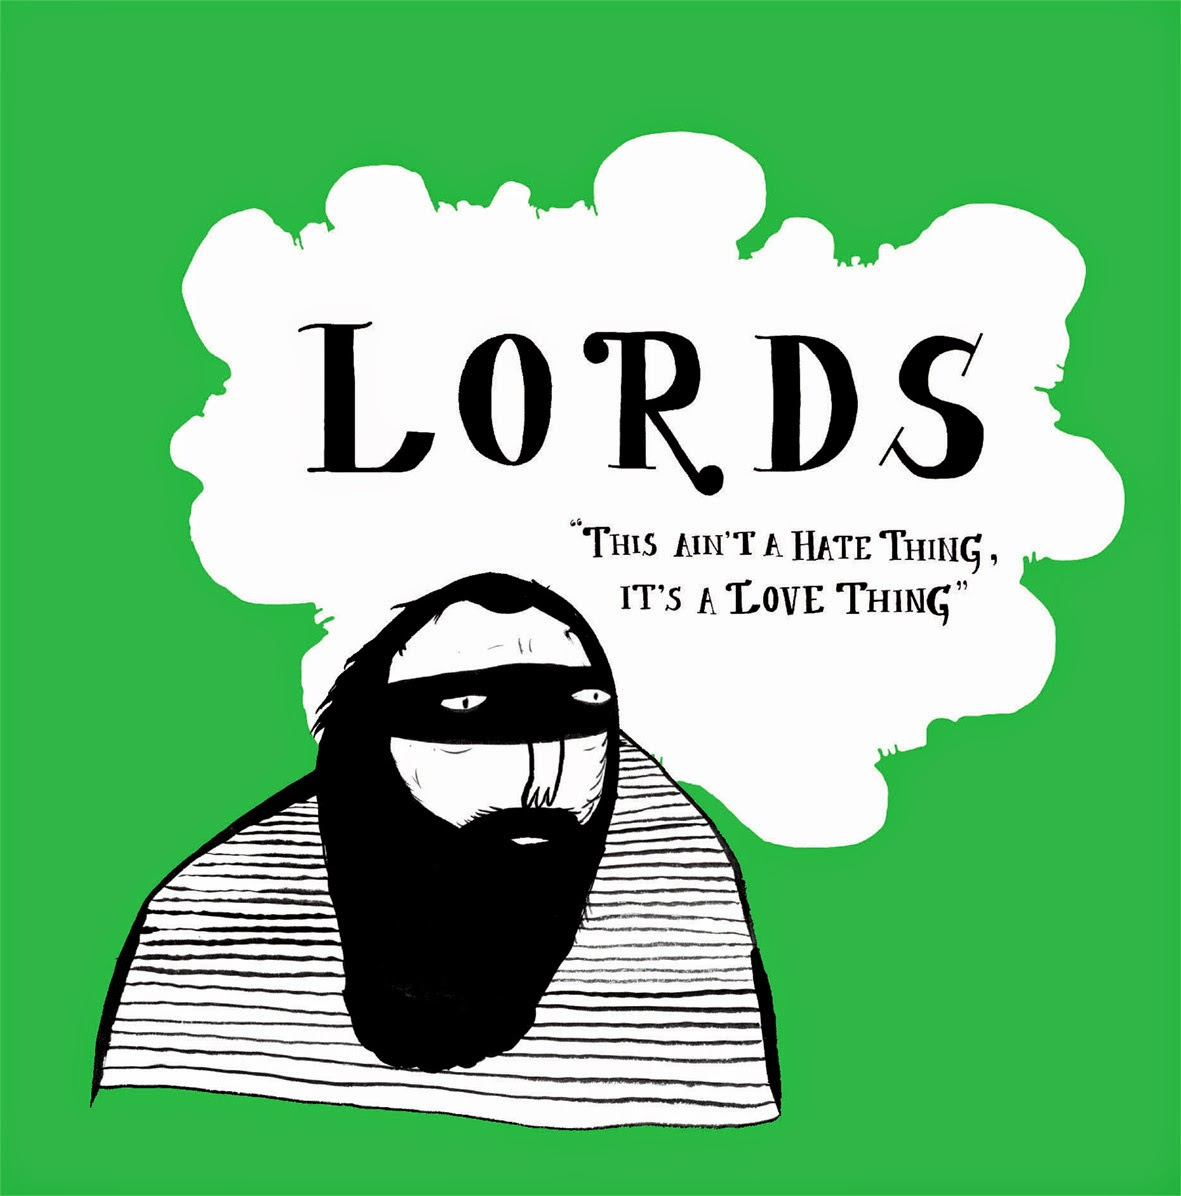 Lords - This Ain't A Hate Thing, It's A Love Thing